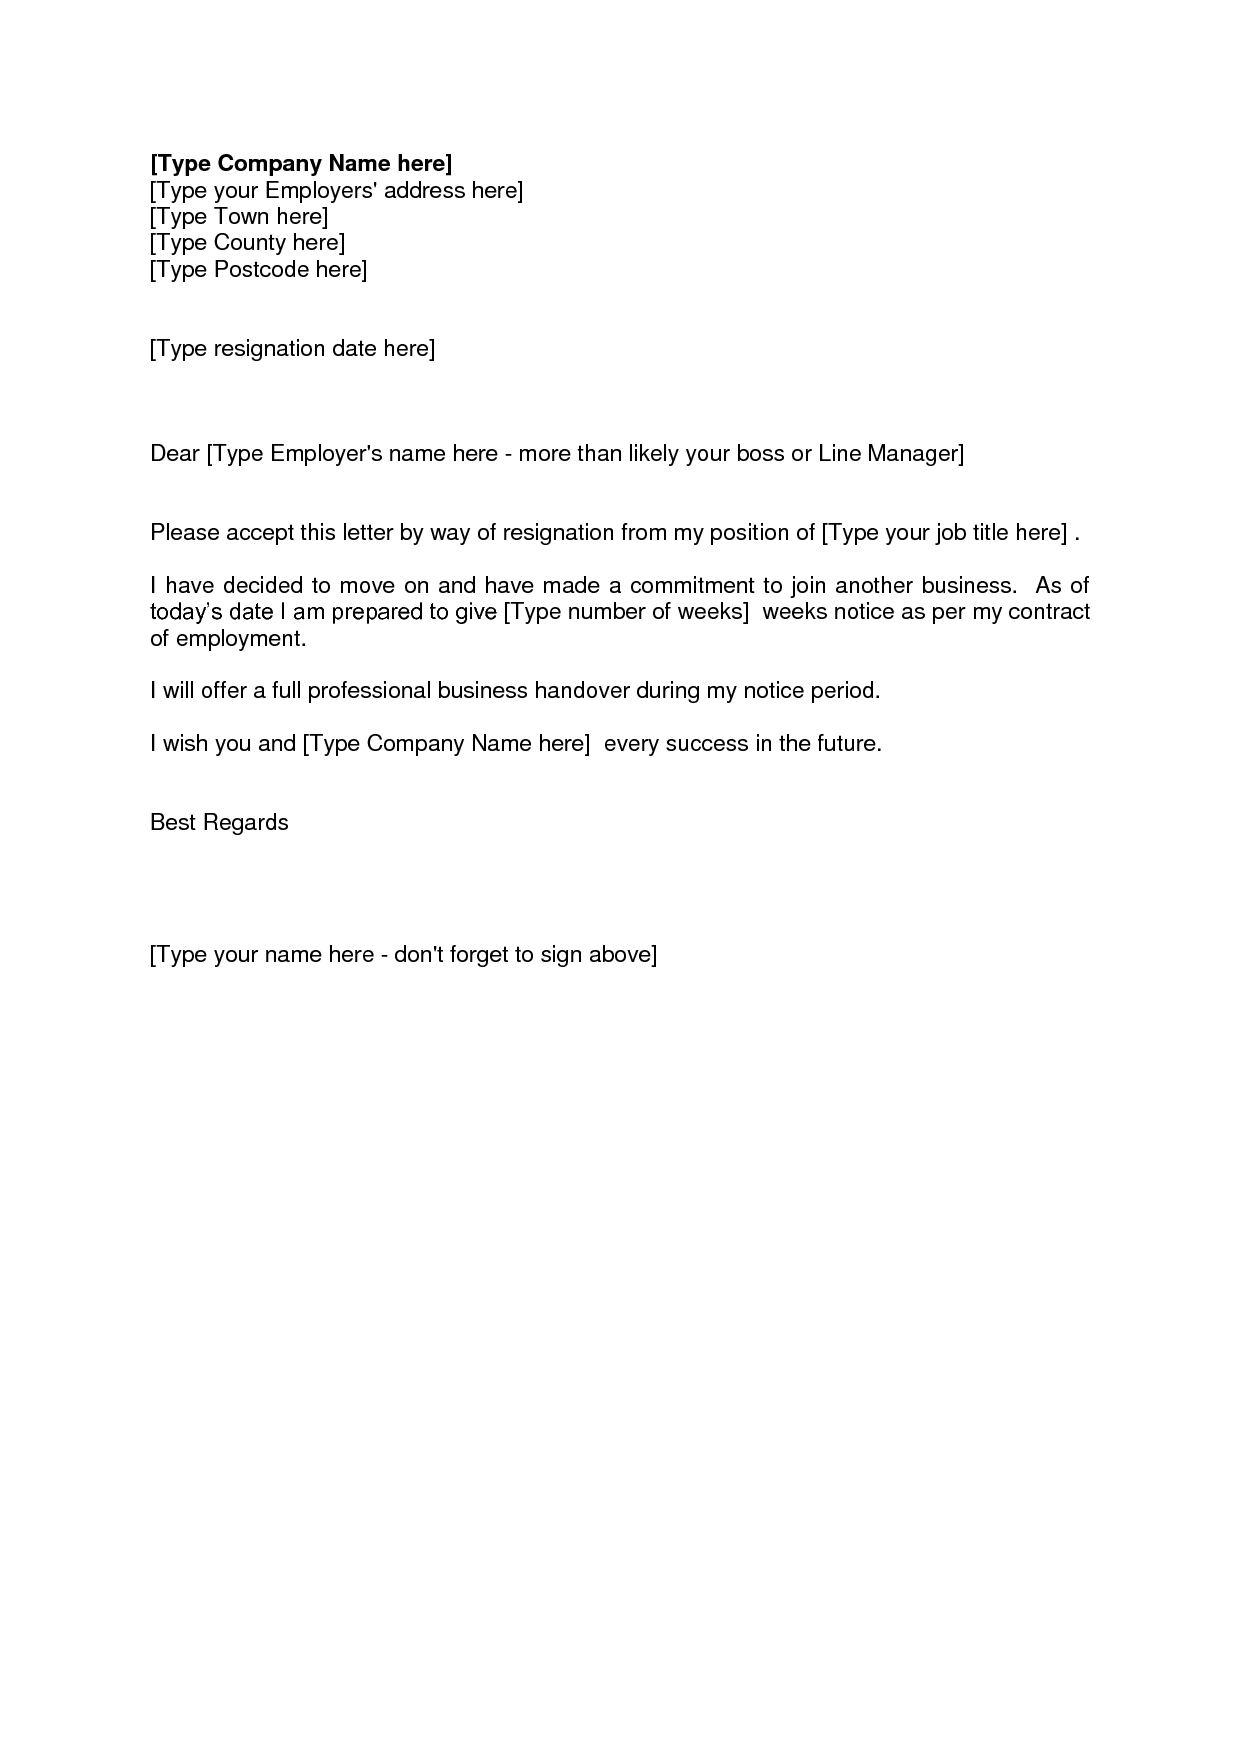 letter of resignation weeks notice template hdwriting a letter of letter of resignation weeks notice template hdwriting a letter of resignation email letter sample